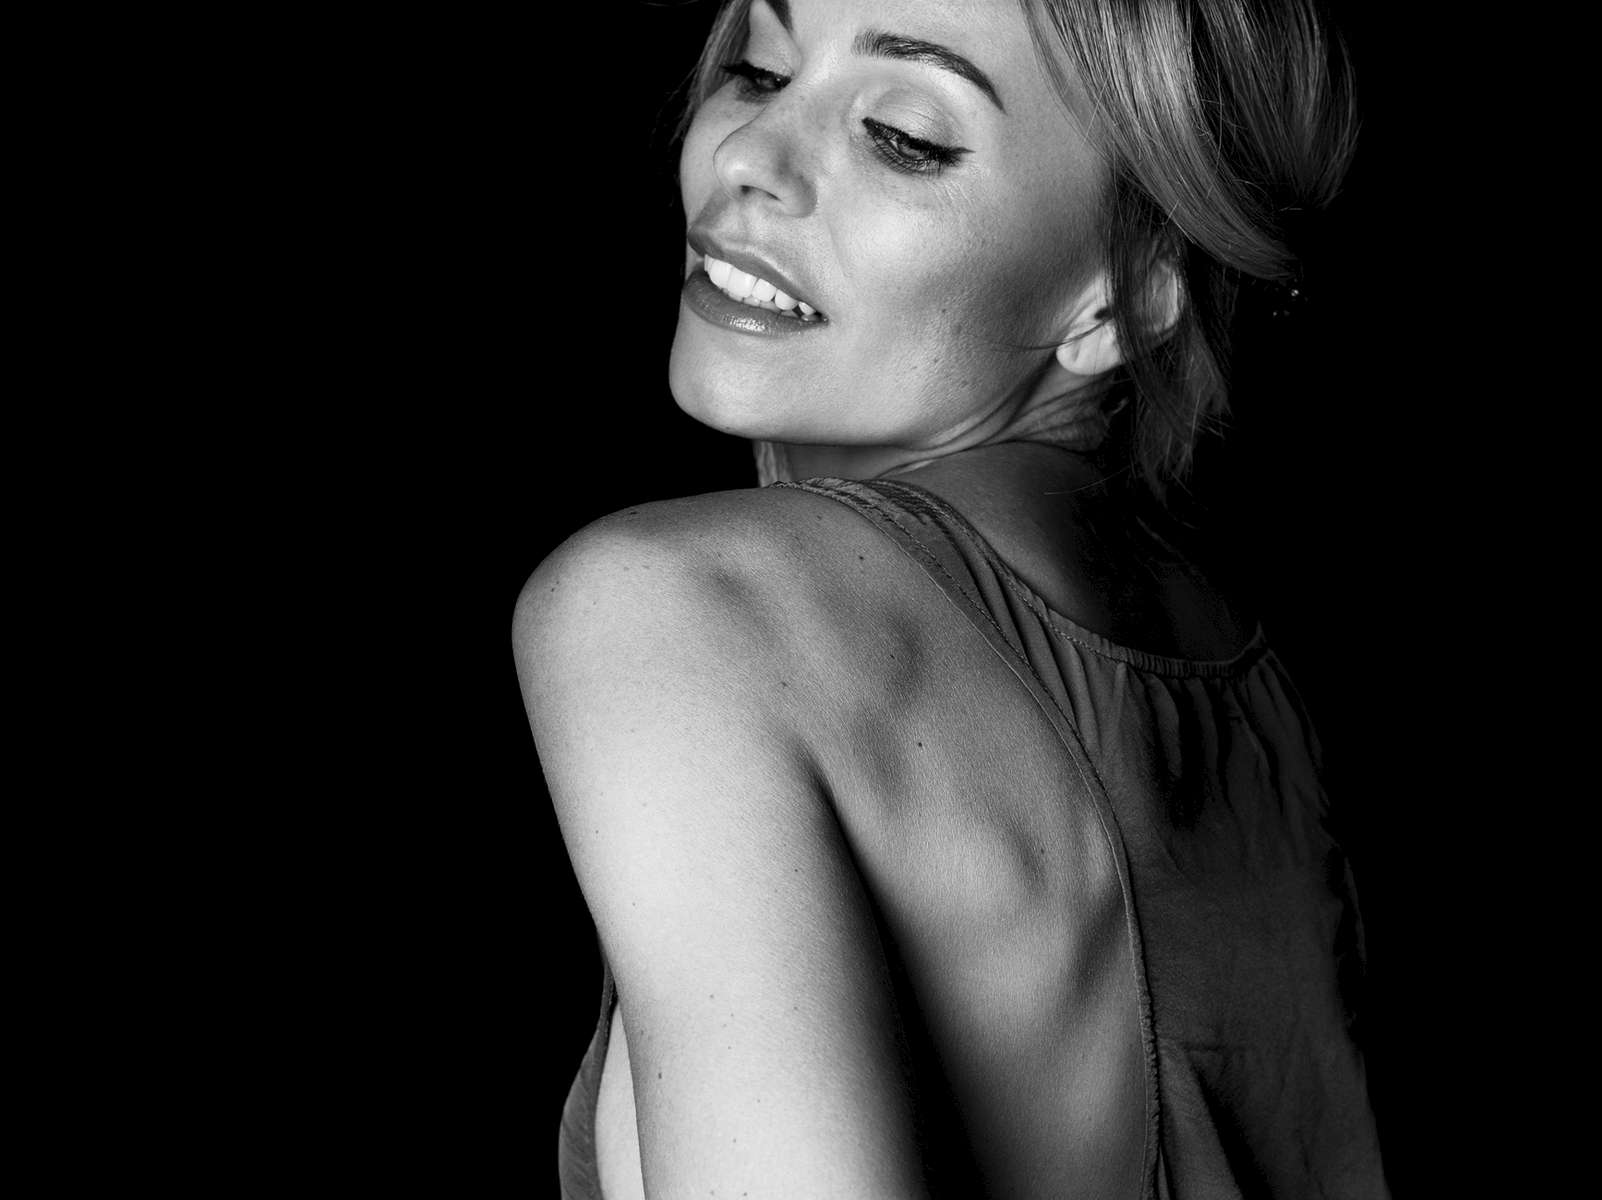 Model: Ingvill in this black and white image posing while moving away from the camera